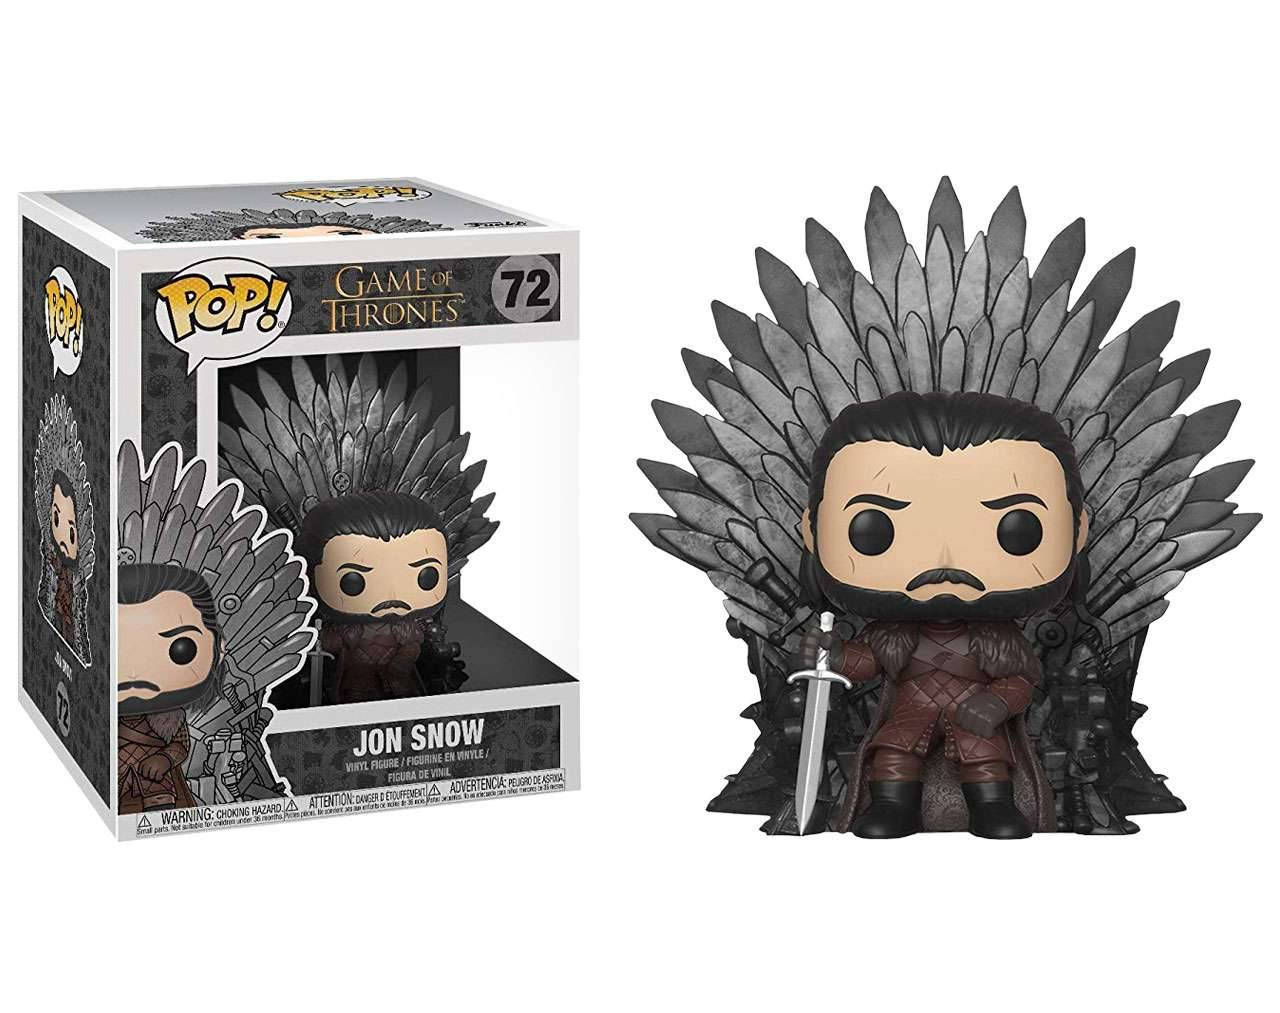 Jon Snow (Throne) Pop! Vinyl